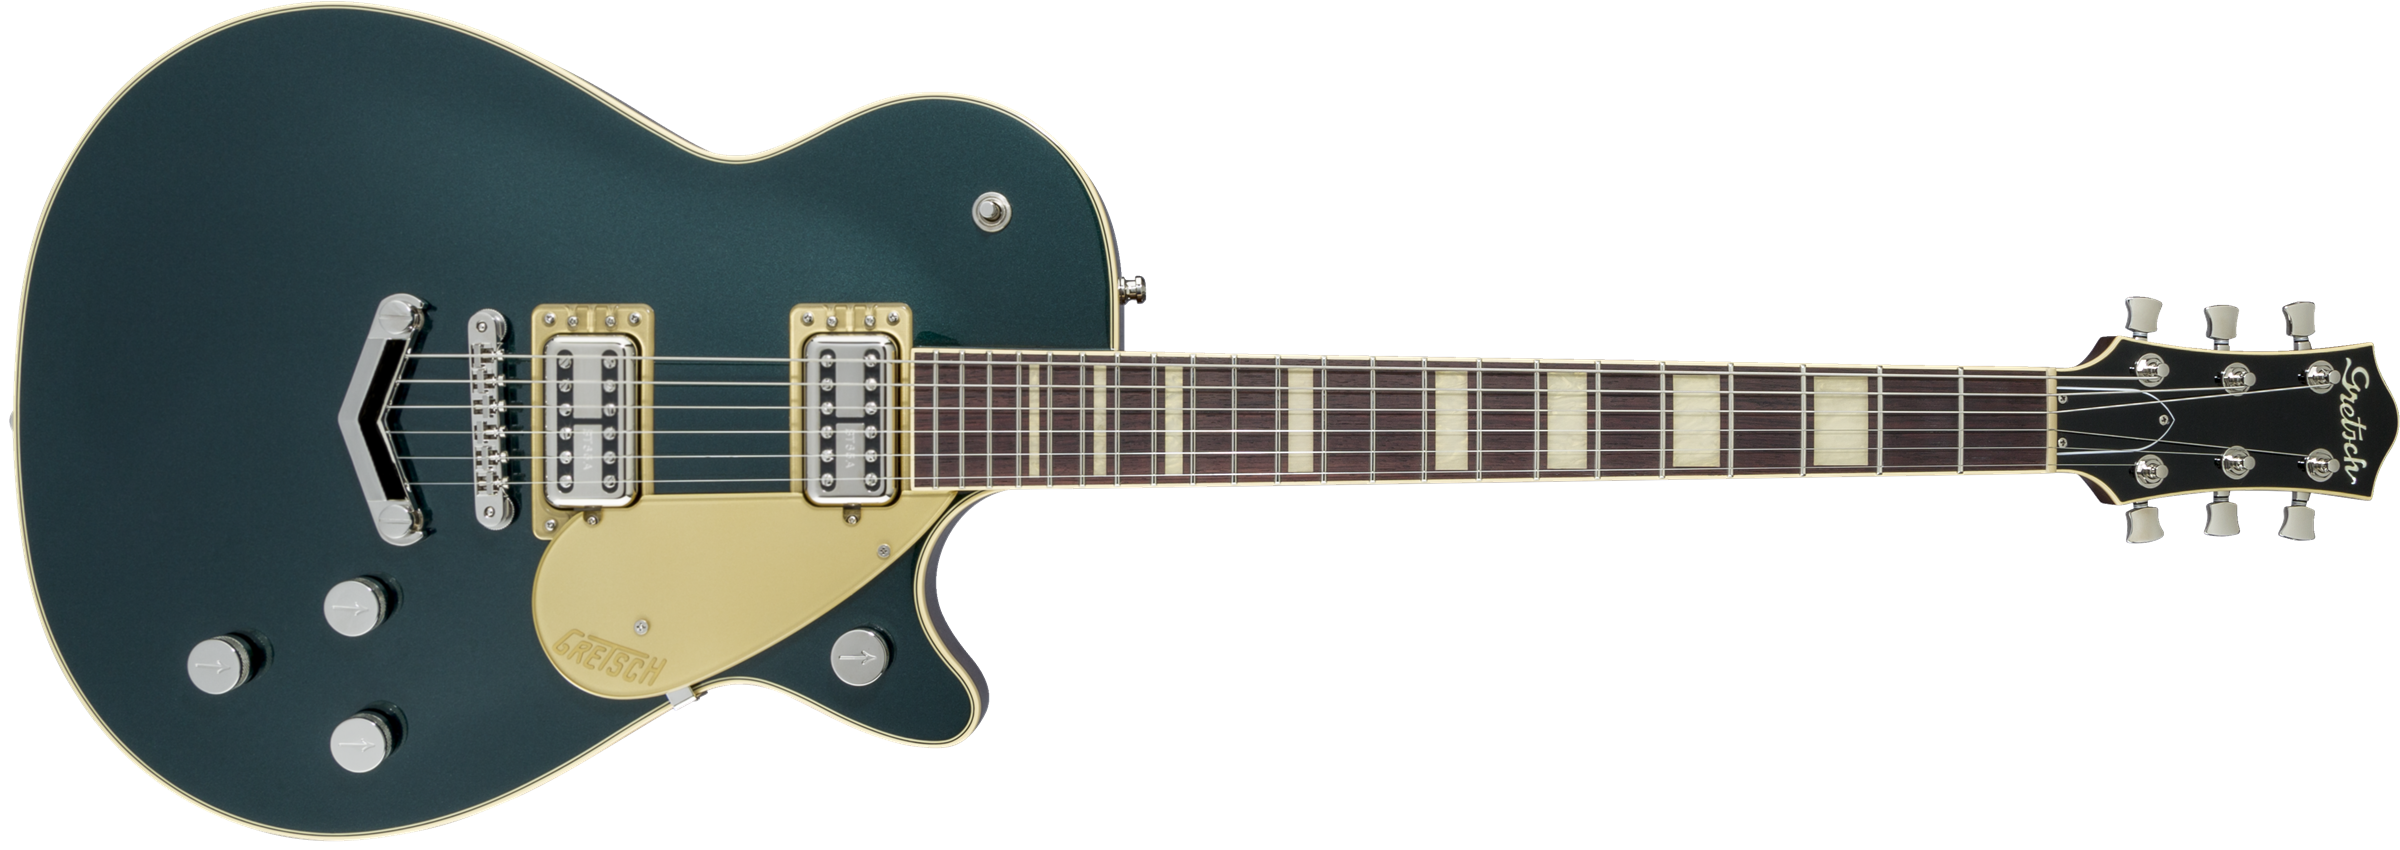 GRETSCH-G6228-Players-Edition-Jet-BT-with-V-Stoptail-Rosewood-Fingerboard-Cadillac-Green-sku-571001614